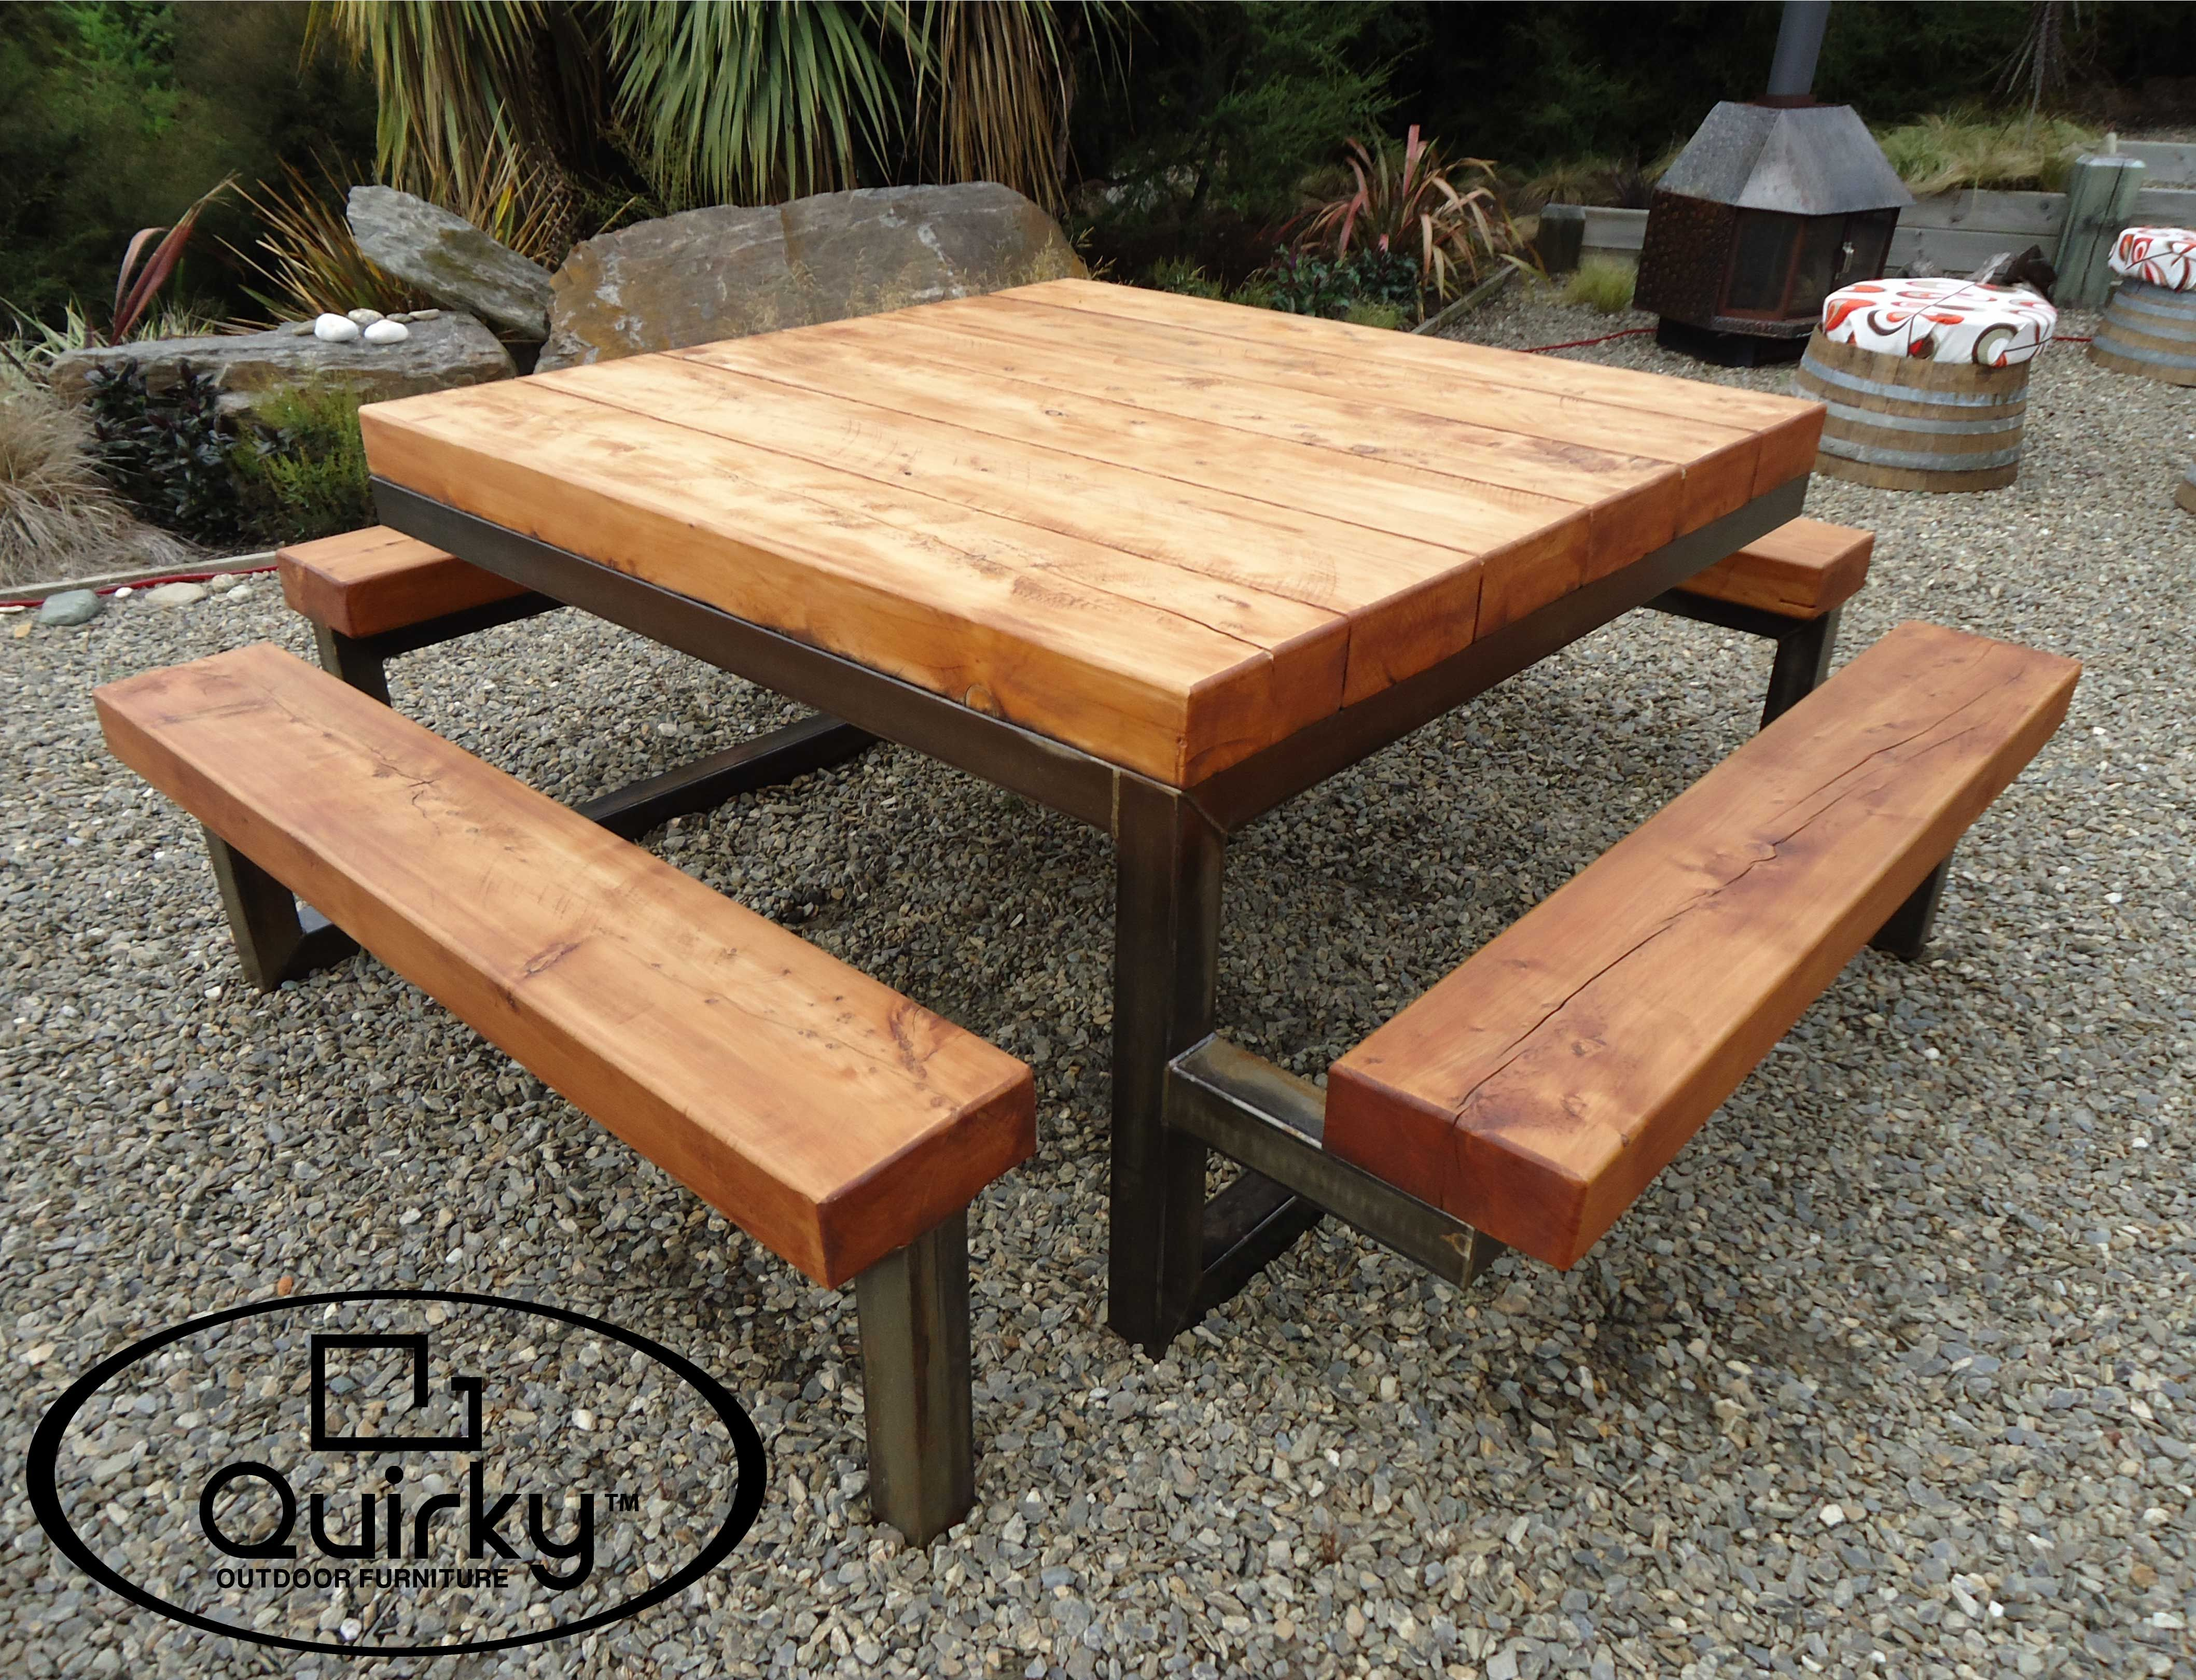 Quirky Outdoor Furniture Square 1500x1500mm Mild Steel Stained